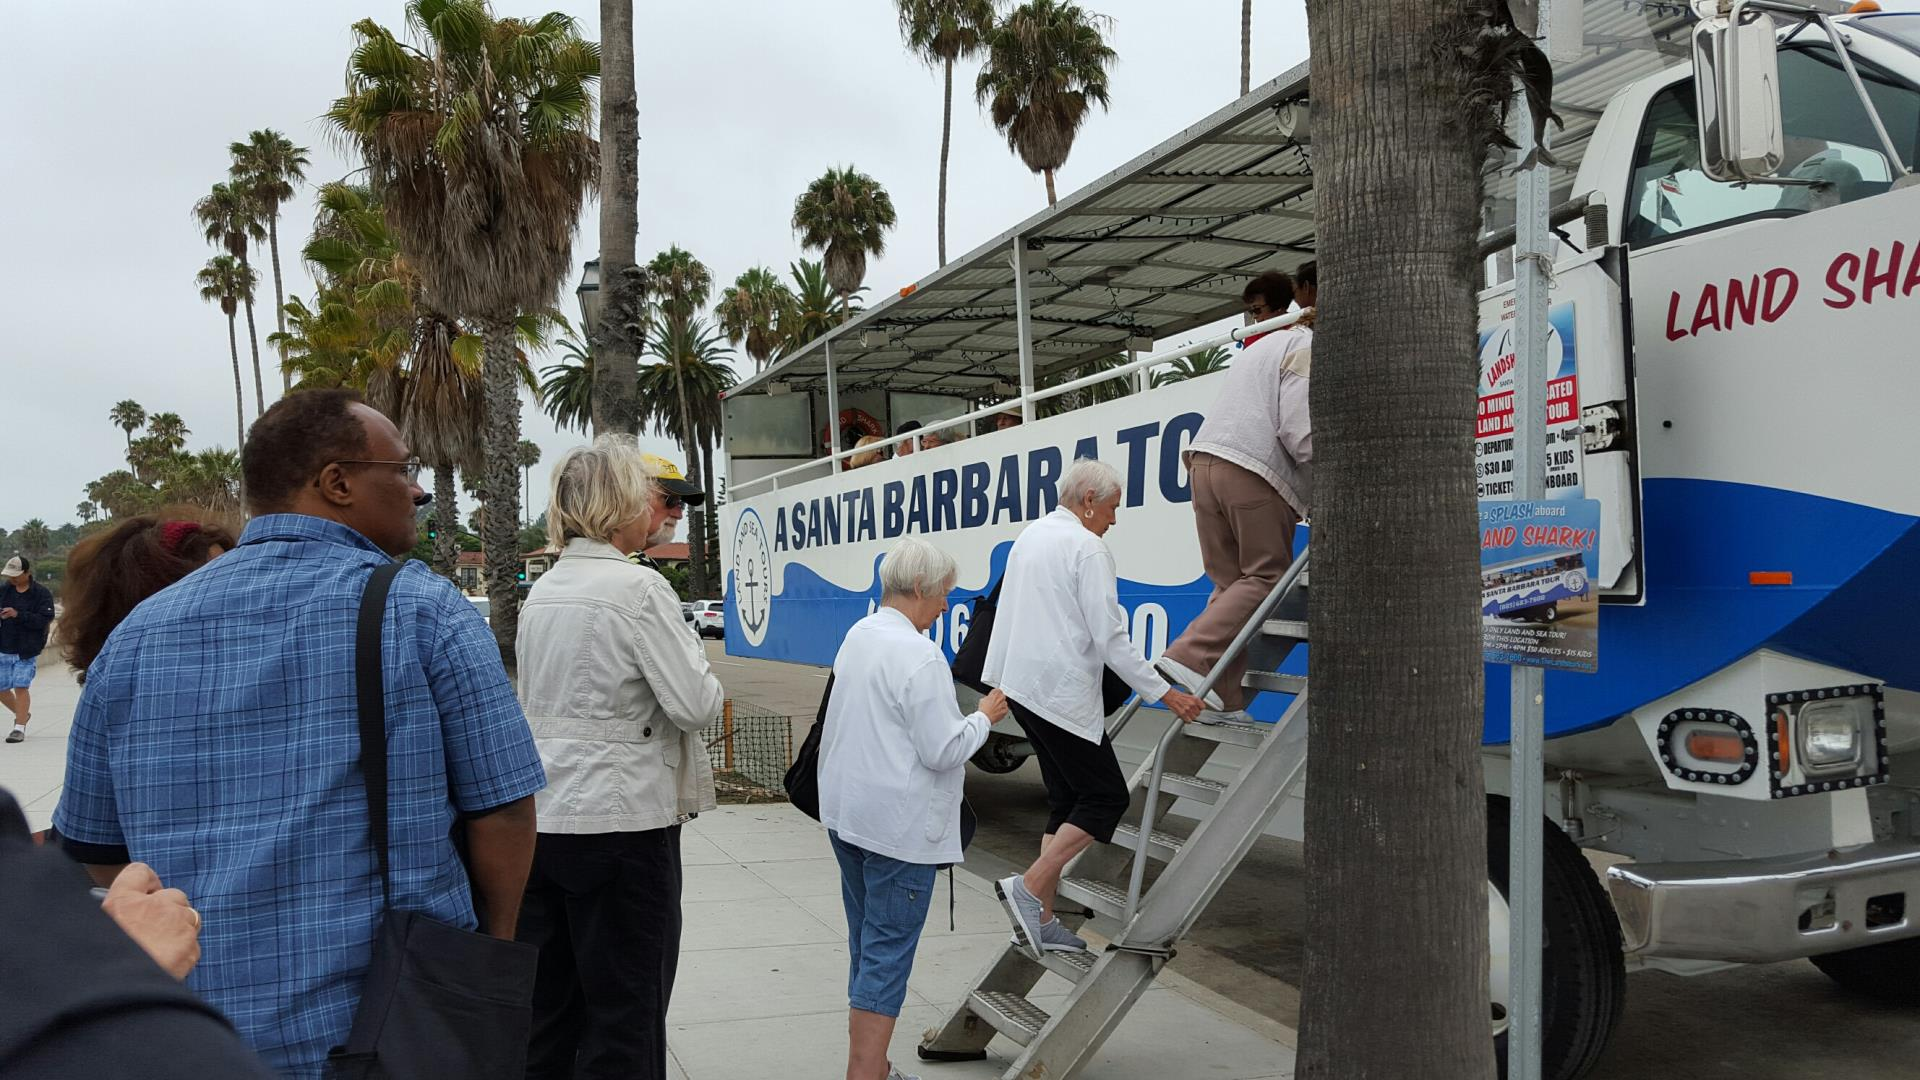 Seniors Boarding a Tour Bus in Santa Barbara